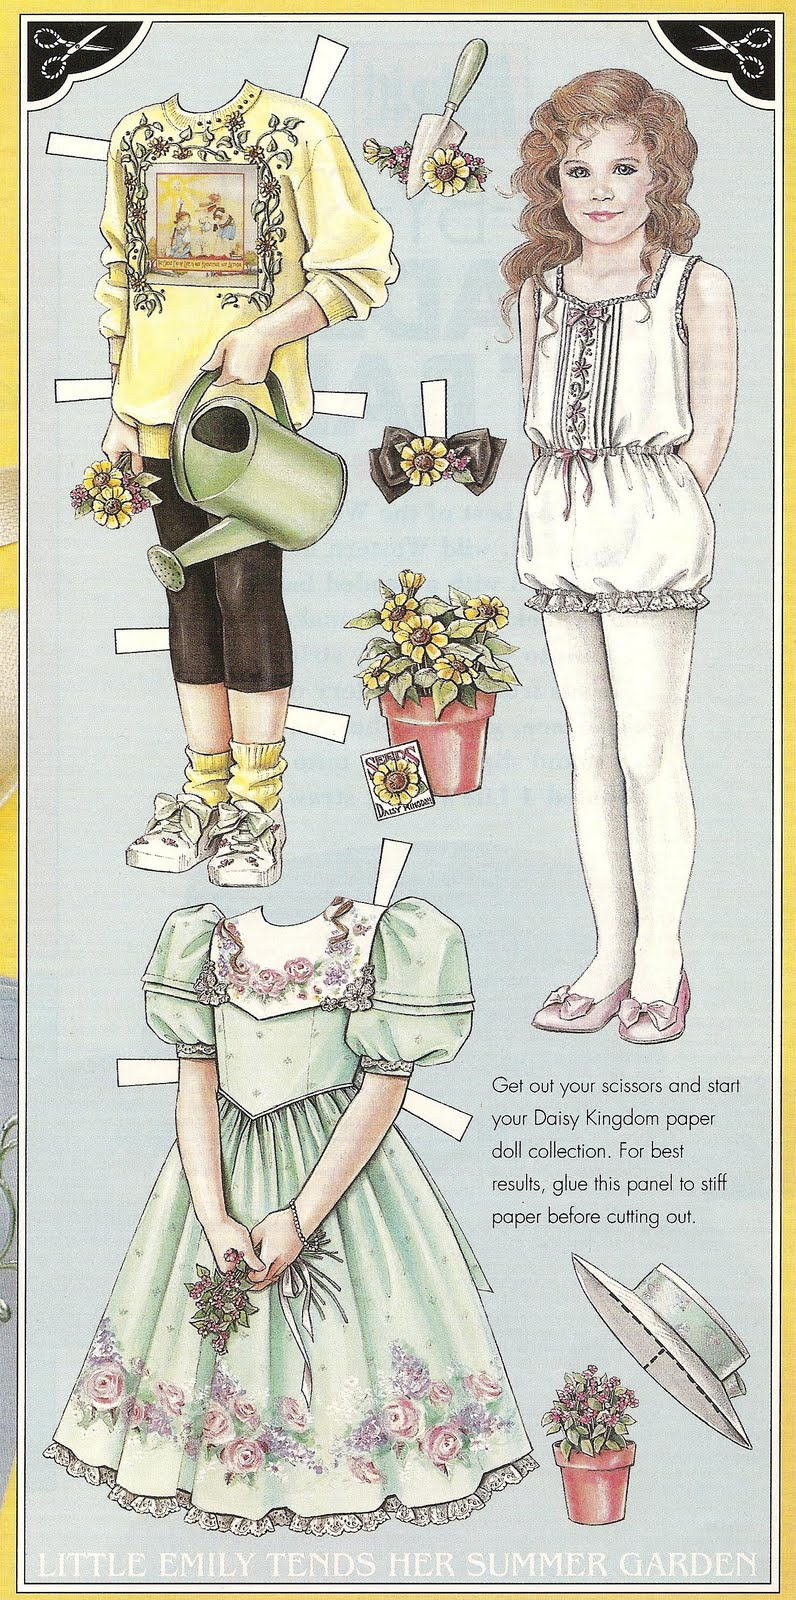 Mostly Paper Dolls: Little Emily Tends Her Summer Garden, 1993